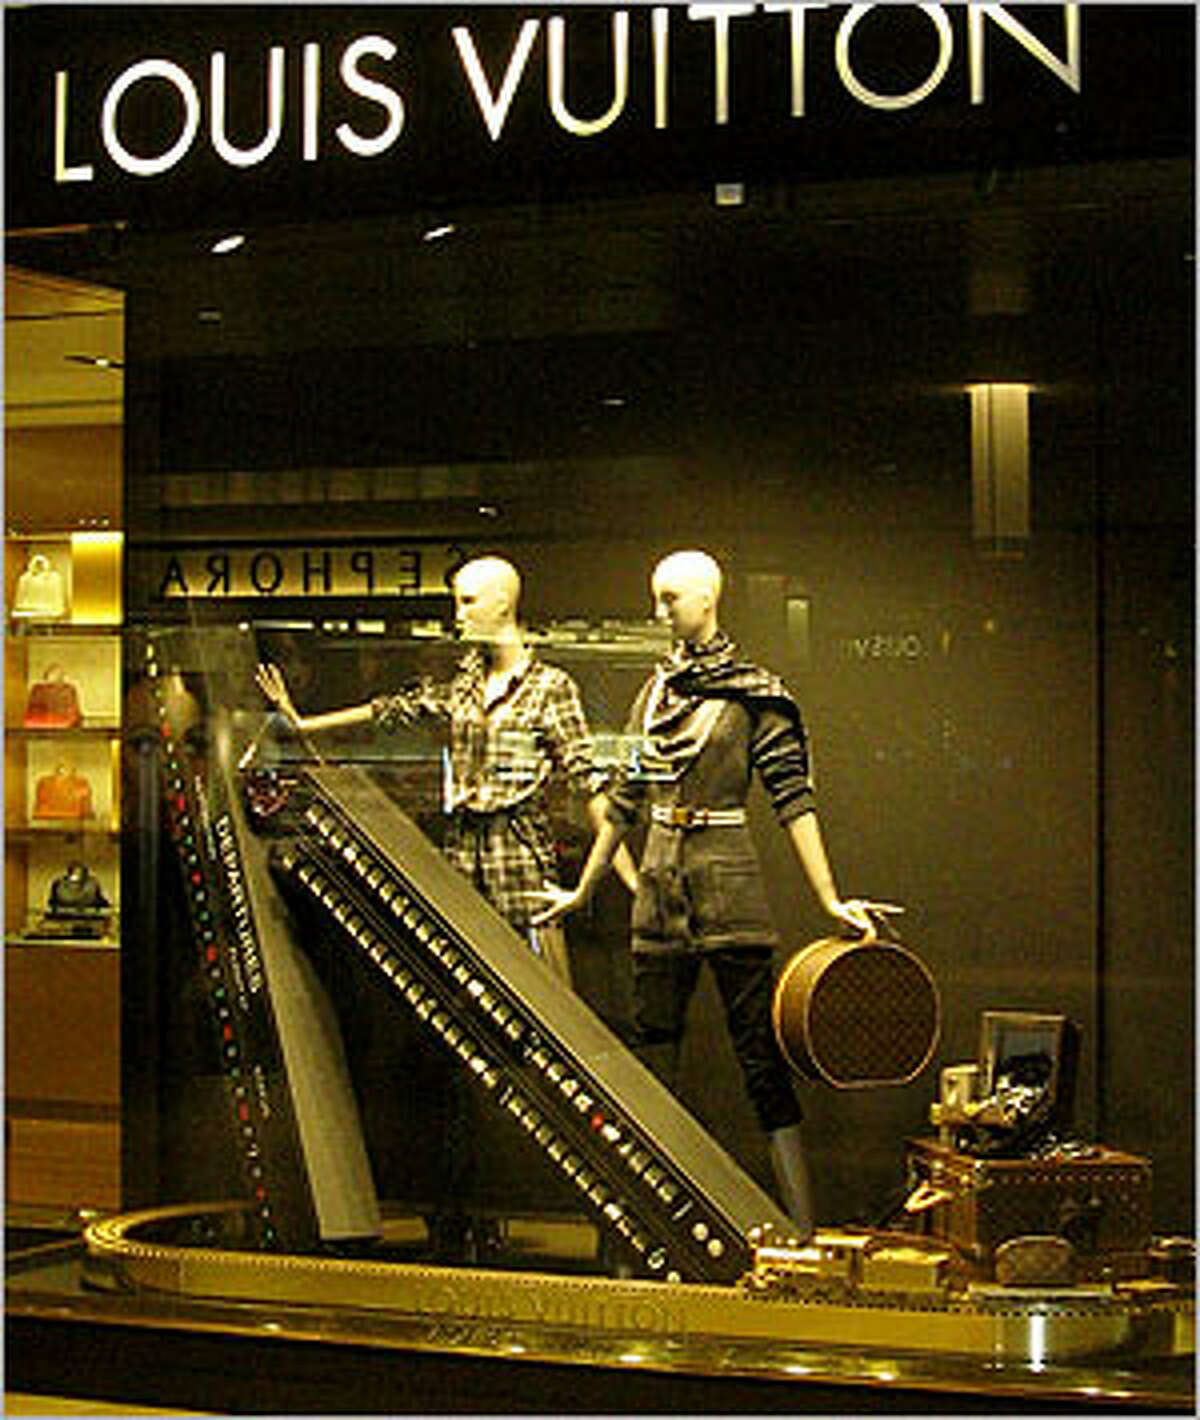 A gold train running on gold tracks hints of the opulence inside the Louis Vuitton store.